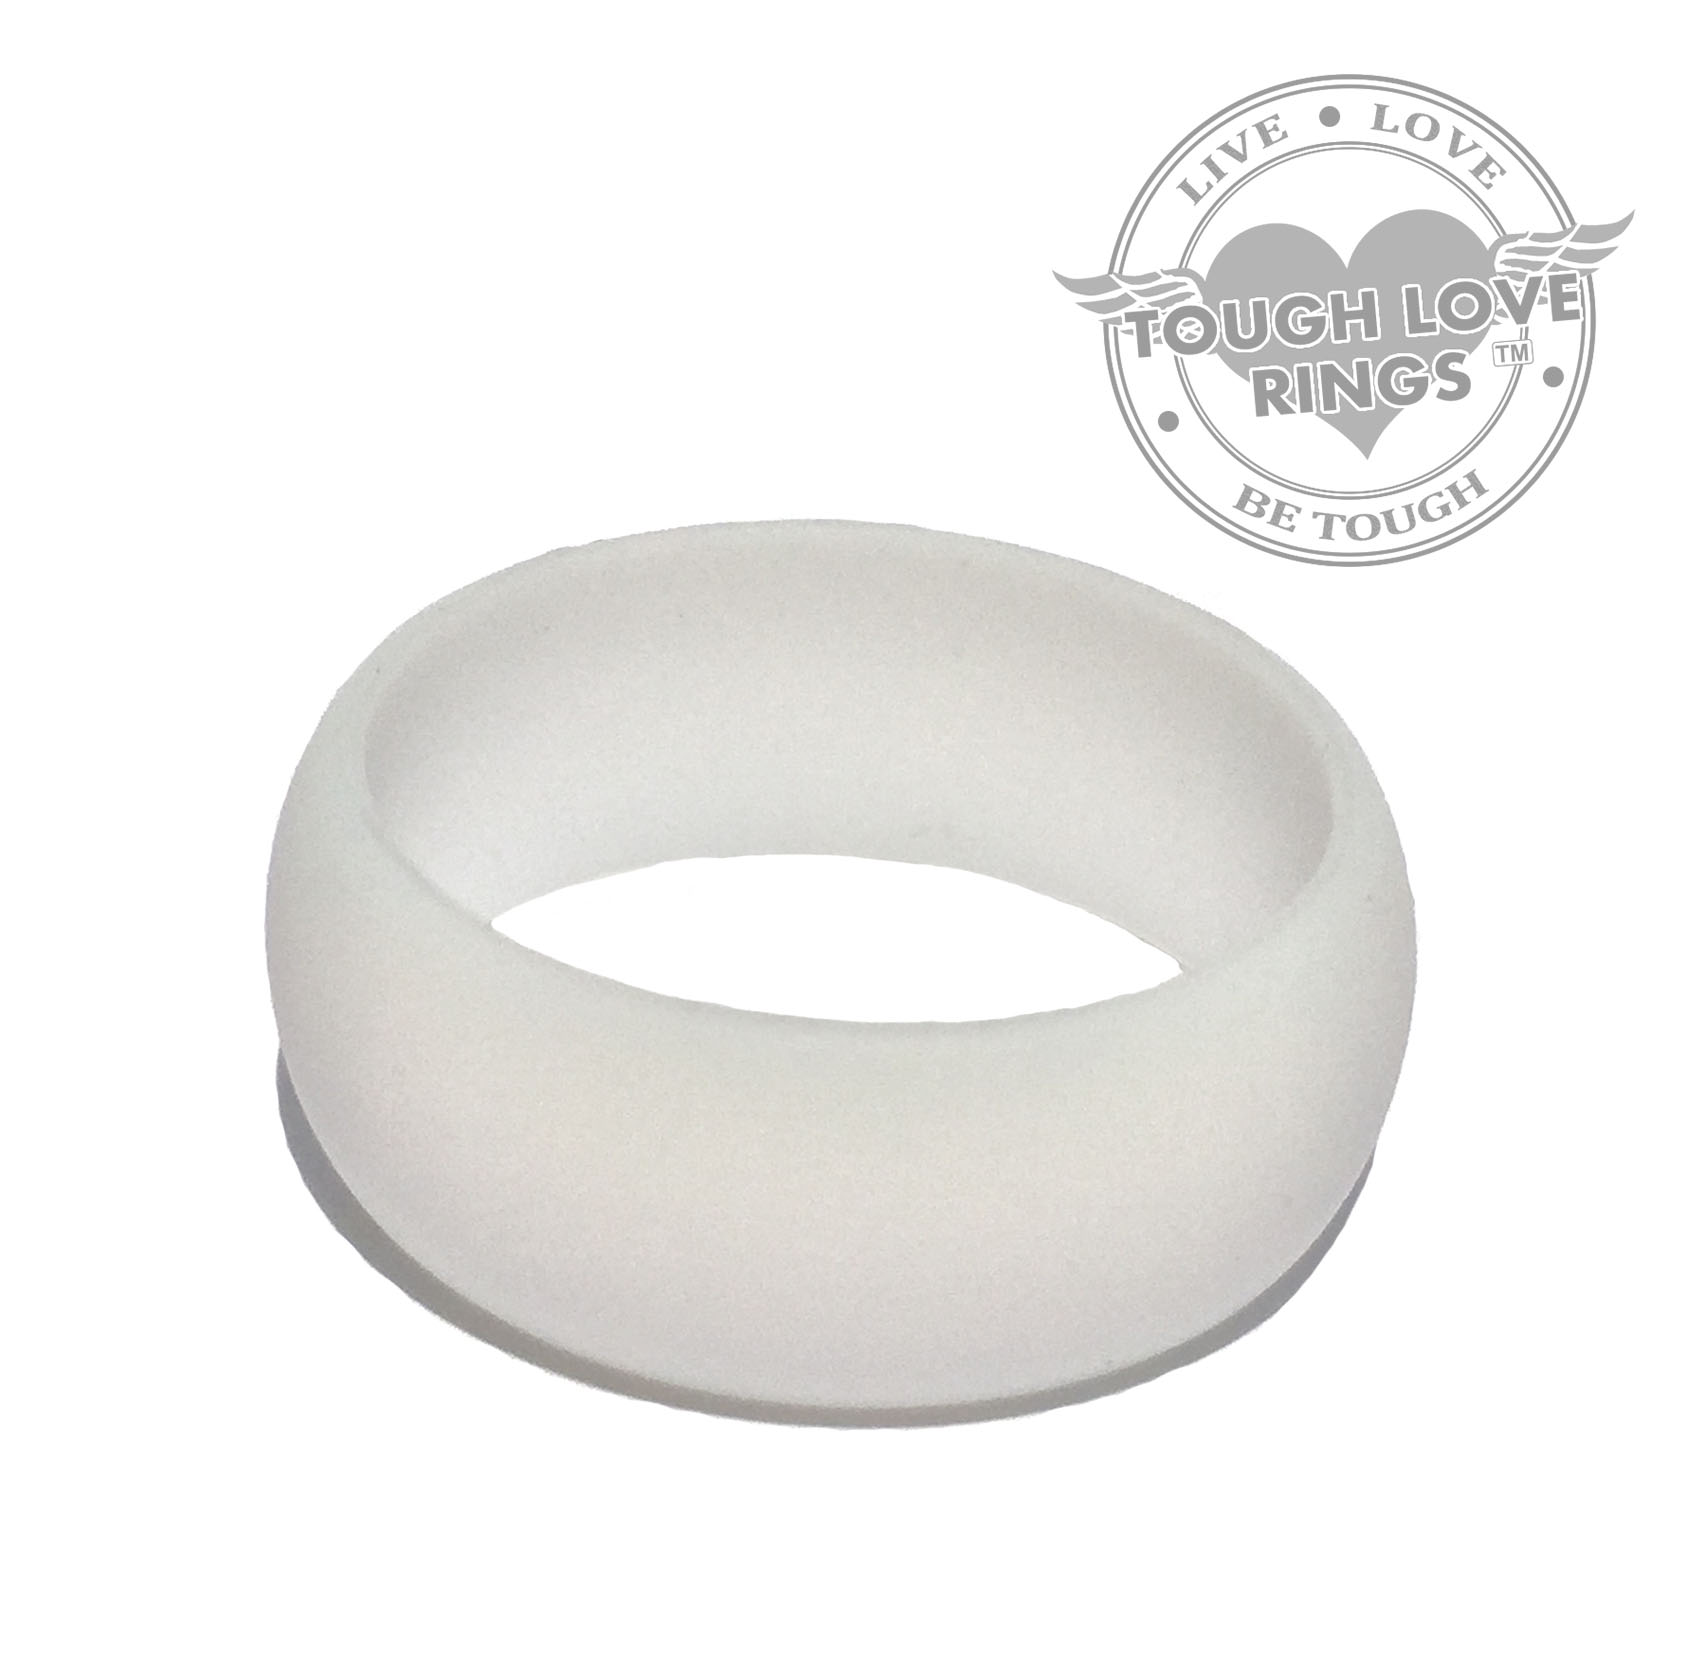 Solid WHITE Silicone Ring Wide band 8 7mm – Tough Love Rings